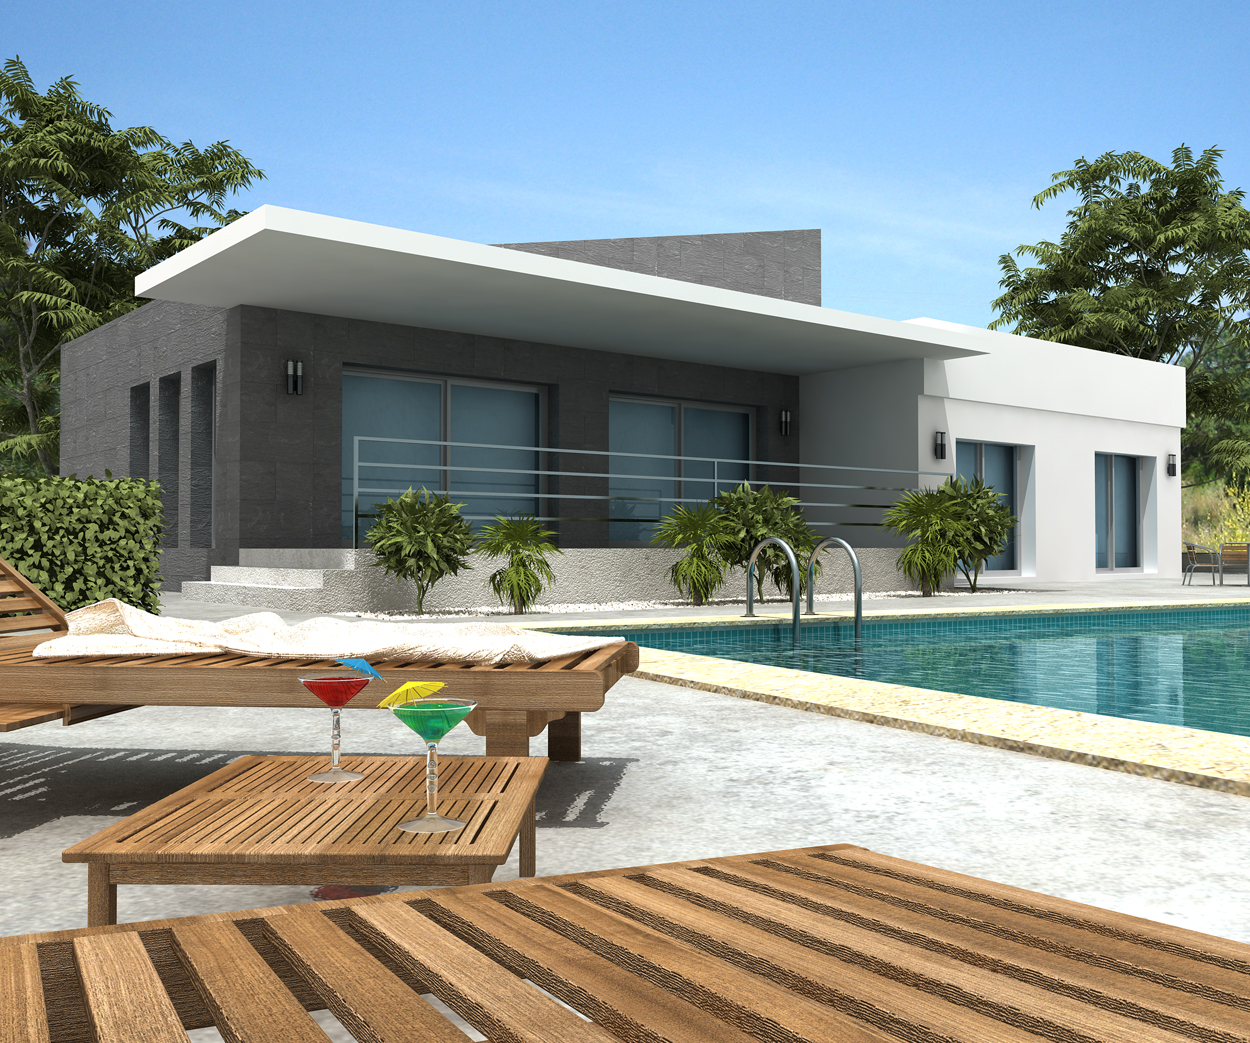 New home designs latest modern villa designs for Modern home designs photos